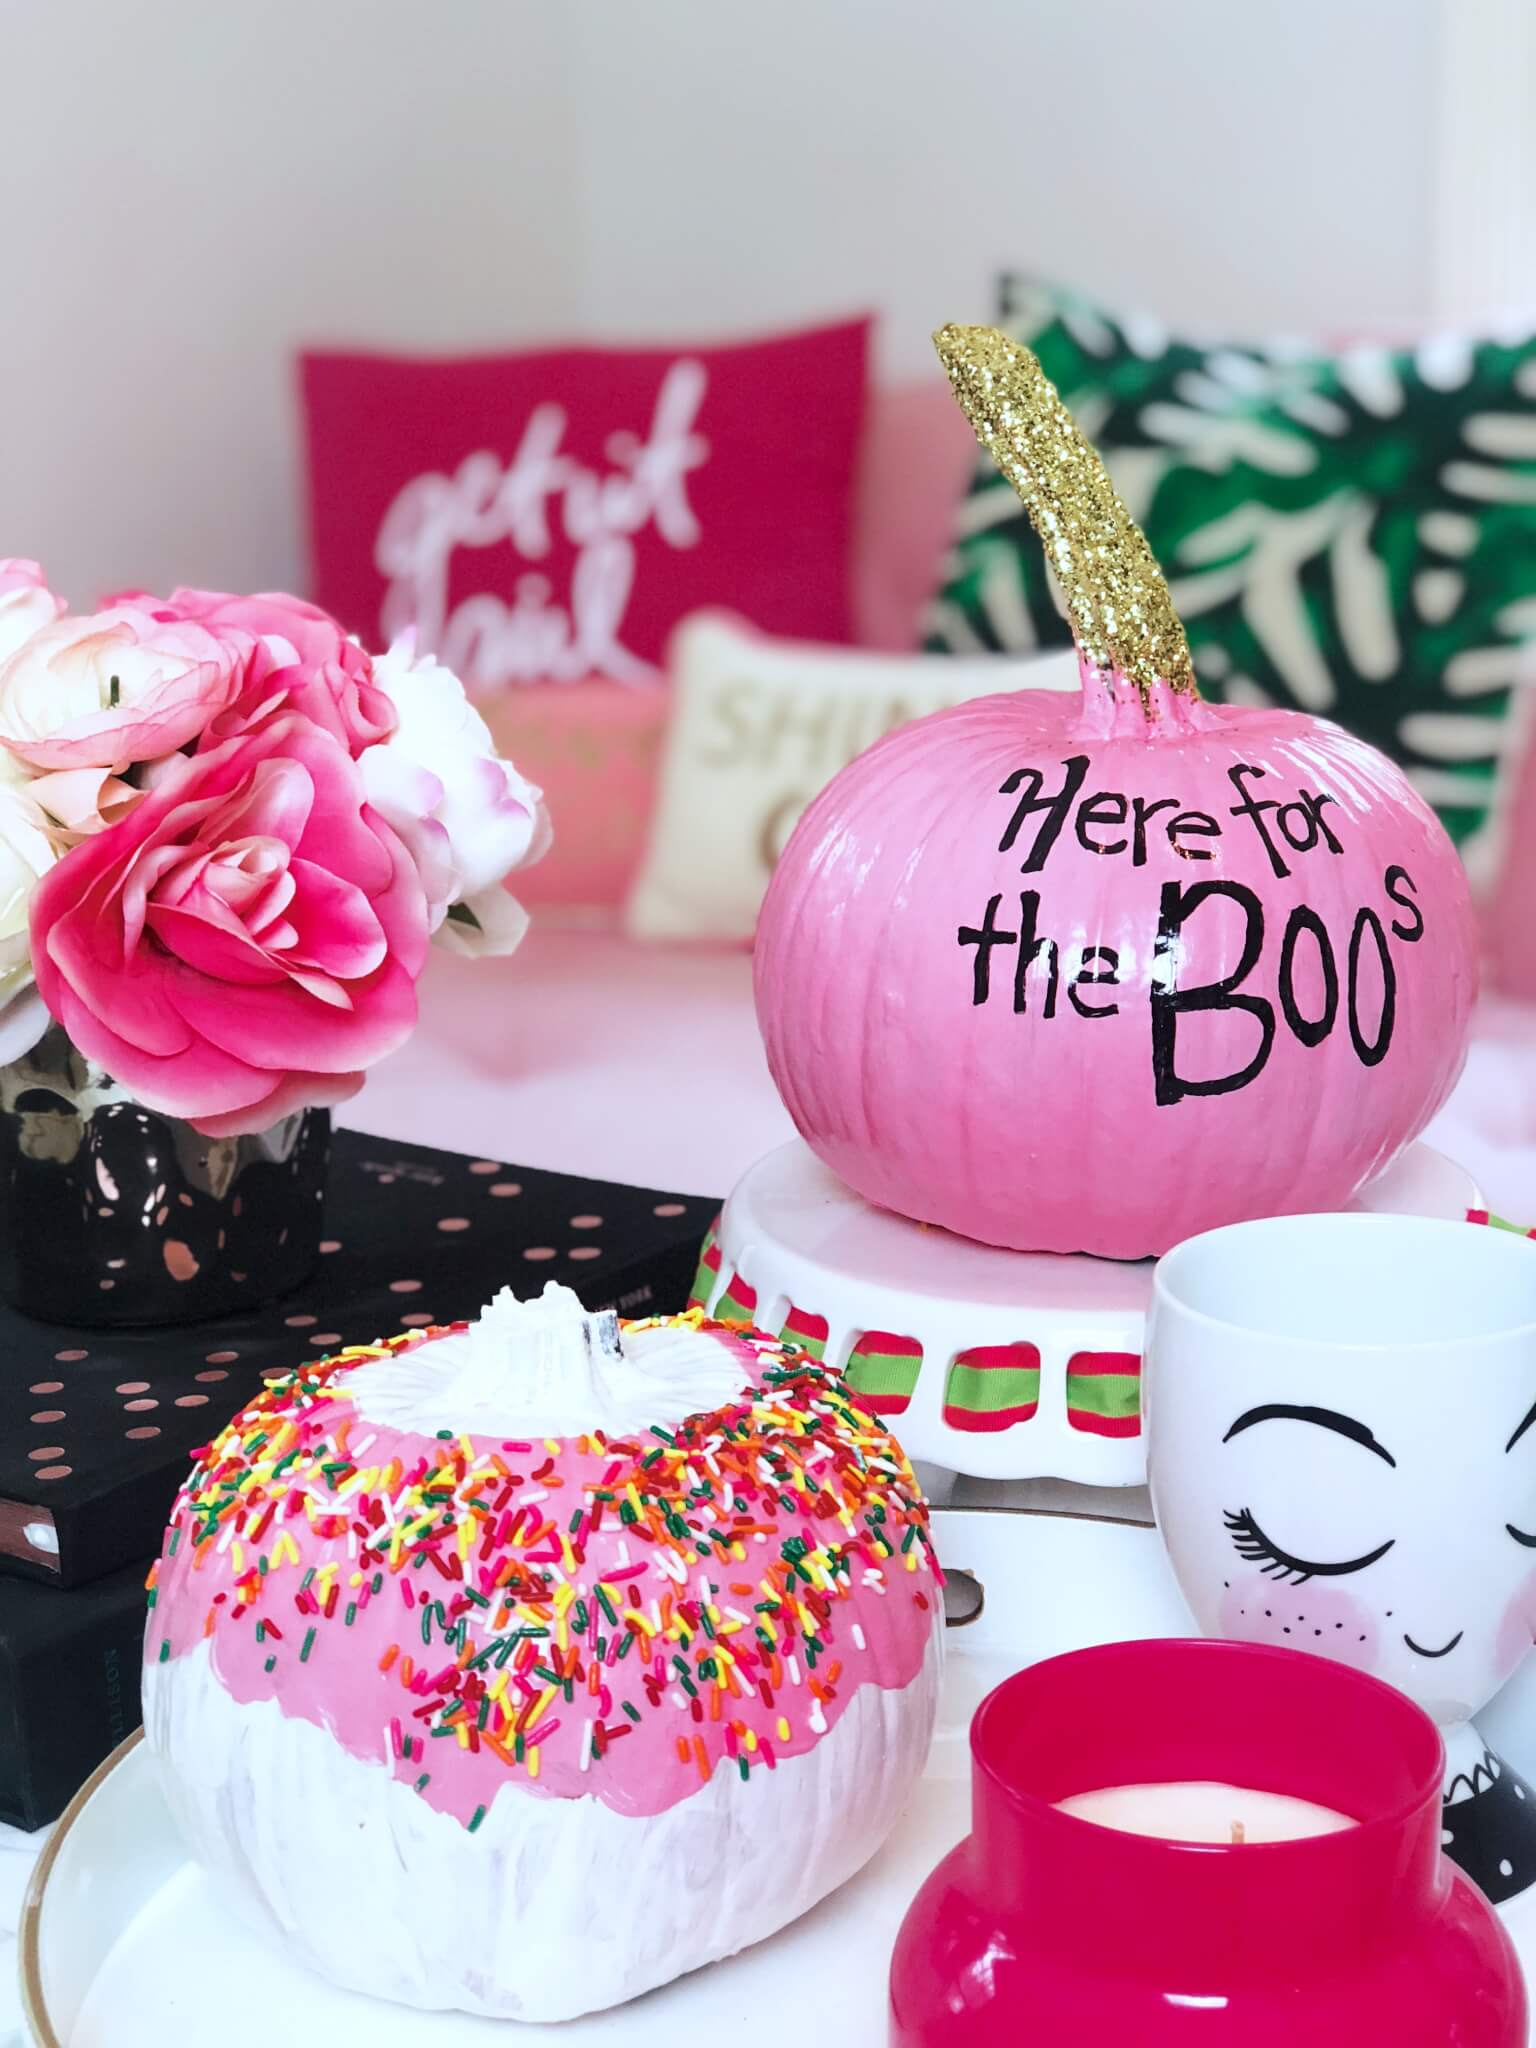 Quick, Cute \u0026 Chic Pumpkin Painting Ideas for Halloween!